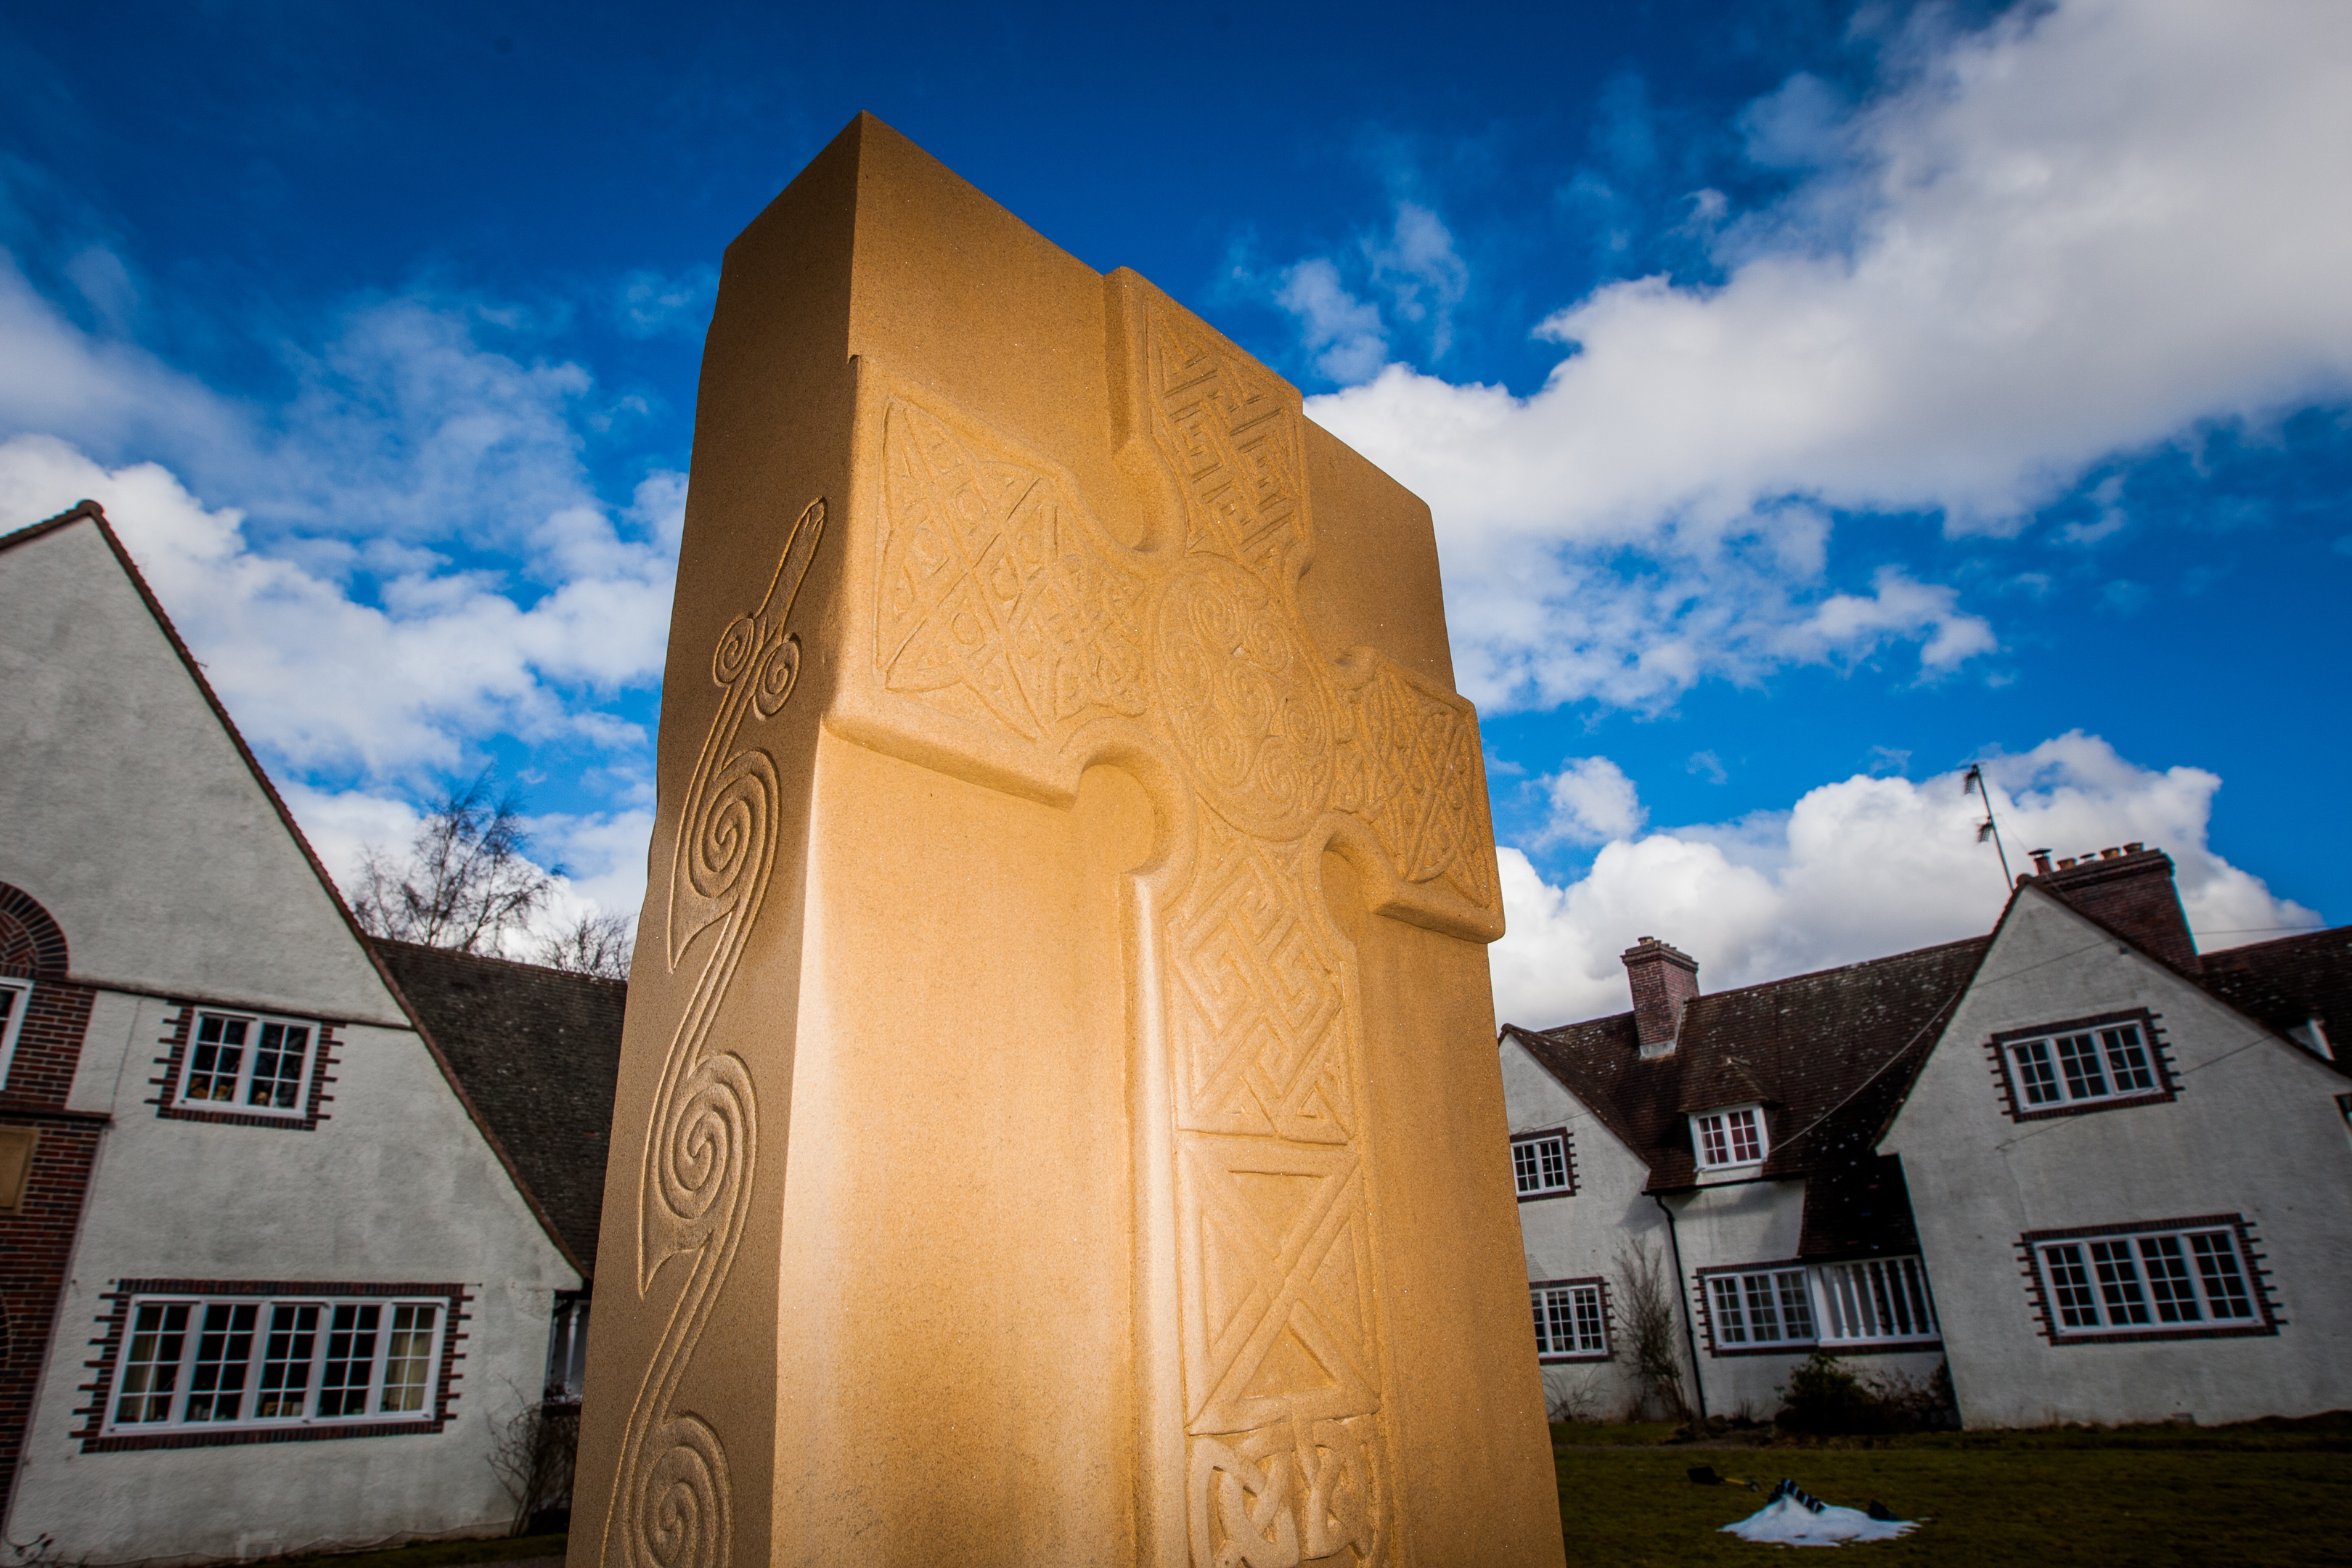 The Pictish stone in Forteviot, carved by David McGovern.